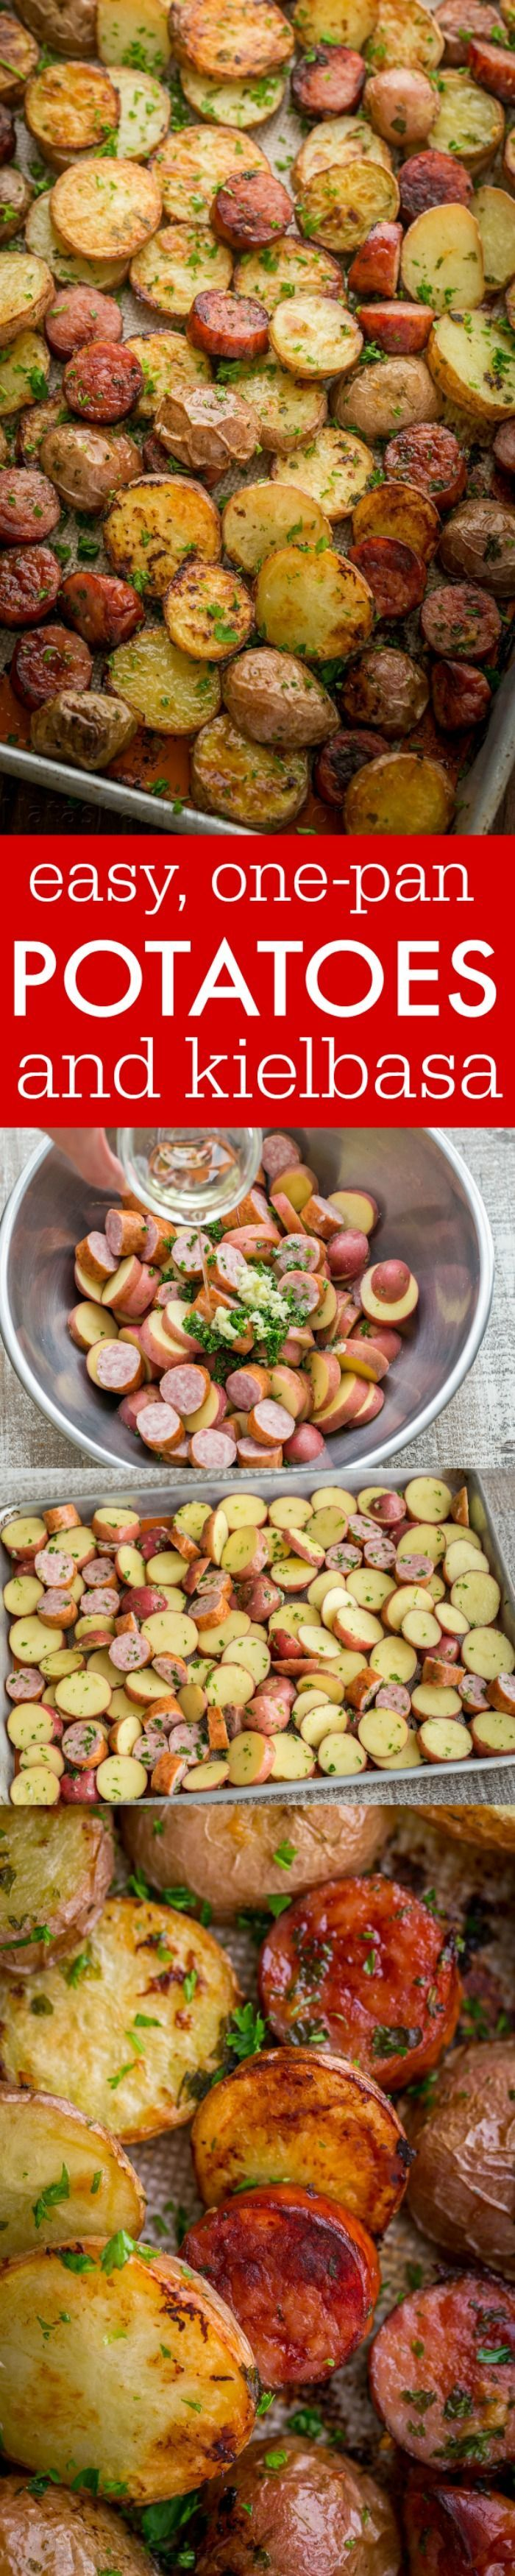 These roasted potatoes are ultra crispy and flavorful with a perfect browning on the coins of kielbasa. Easy, one-pan roasted potatoes and sausage recipe   http://natashaskitchen.com